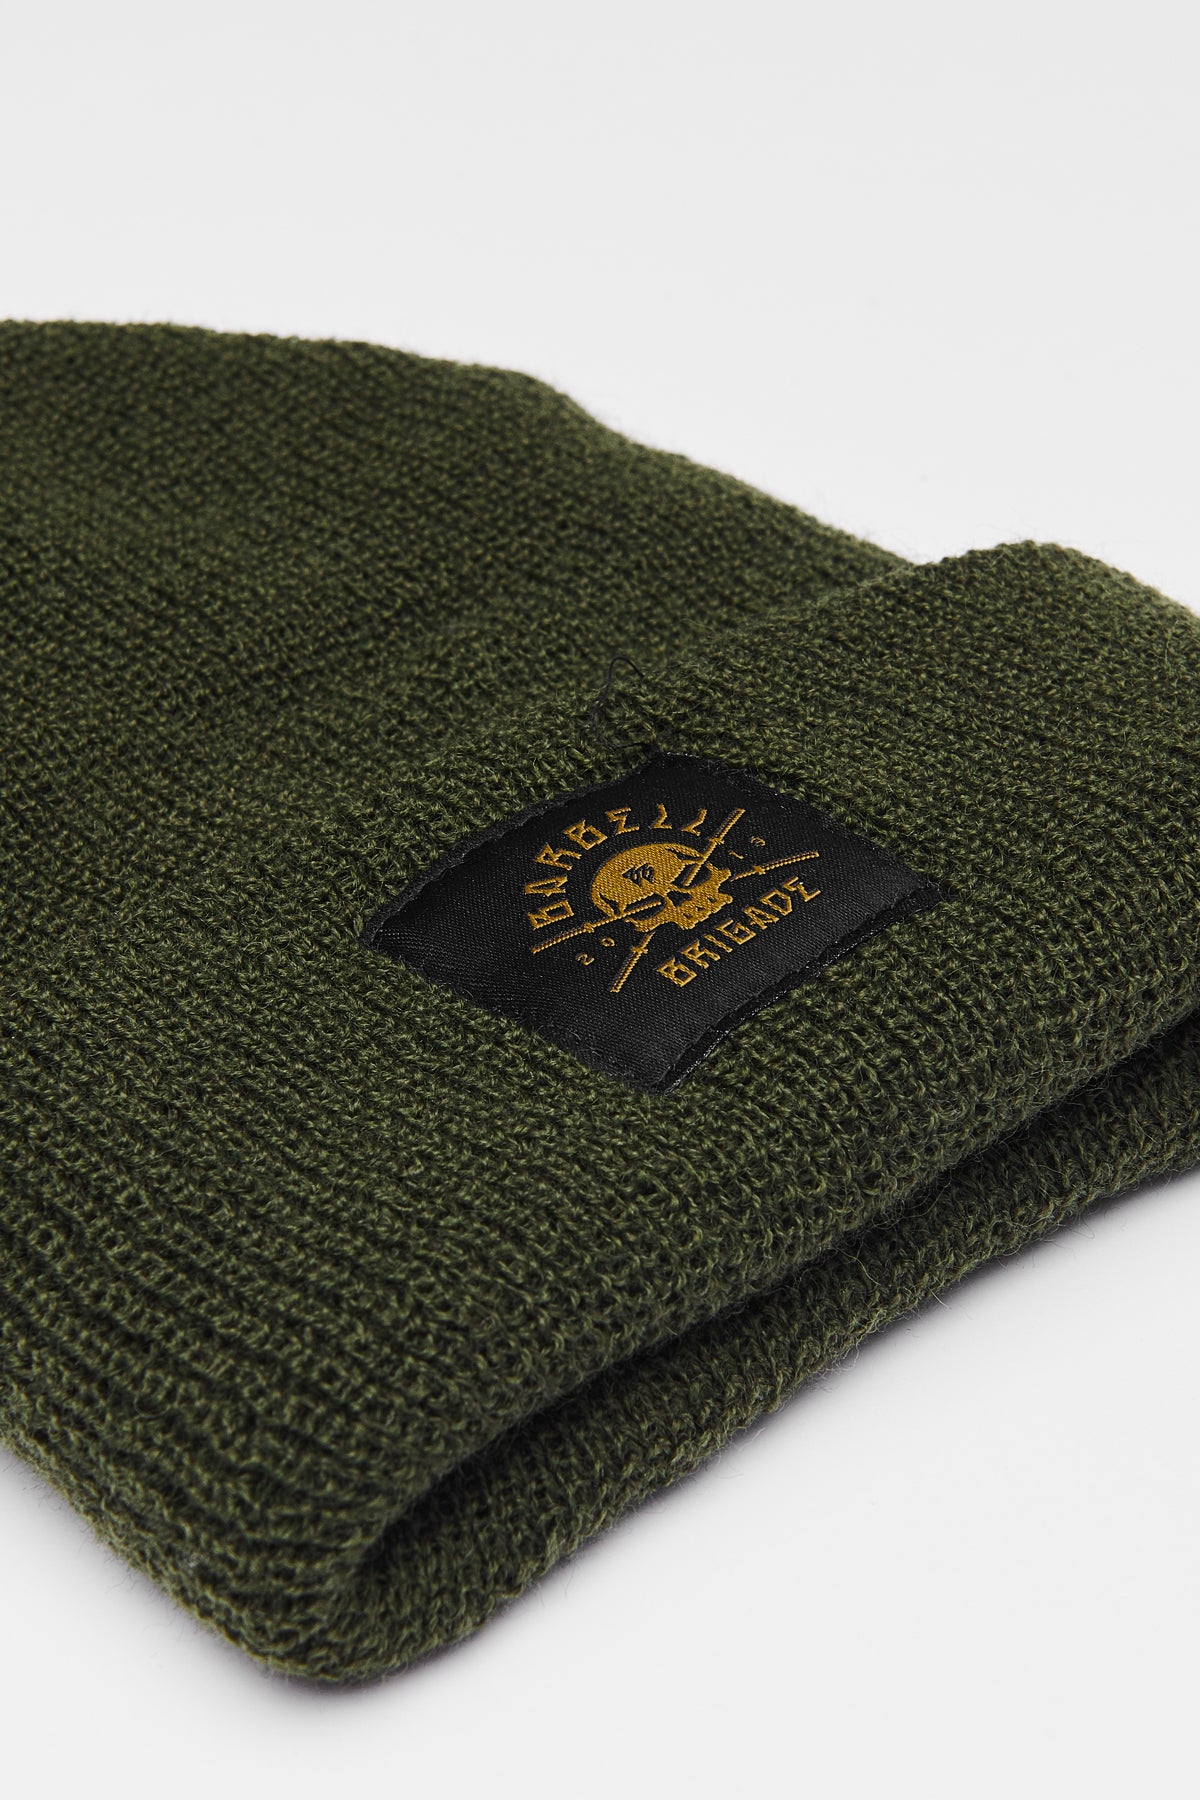 Rebirth - Watch Cap (Olive Drab)